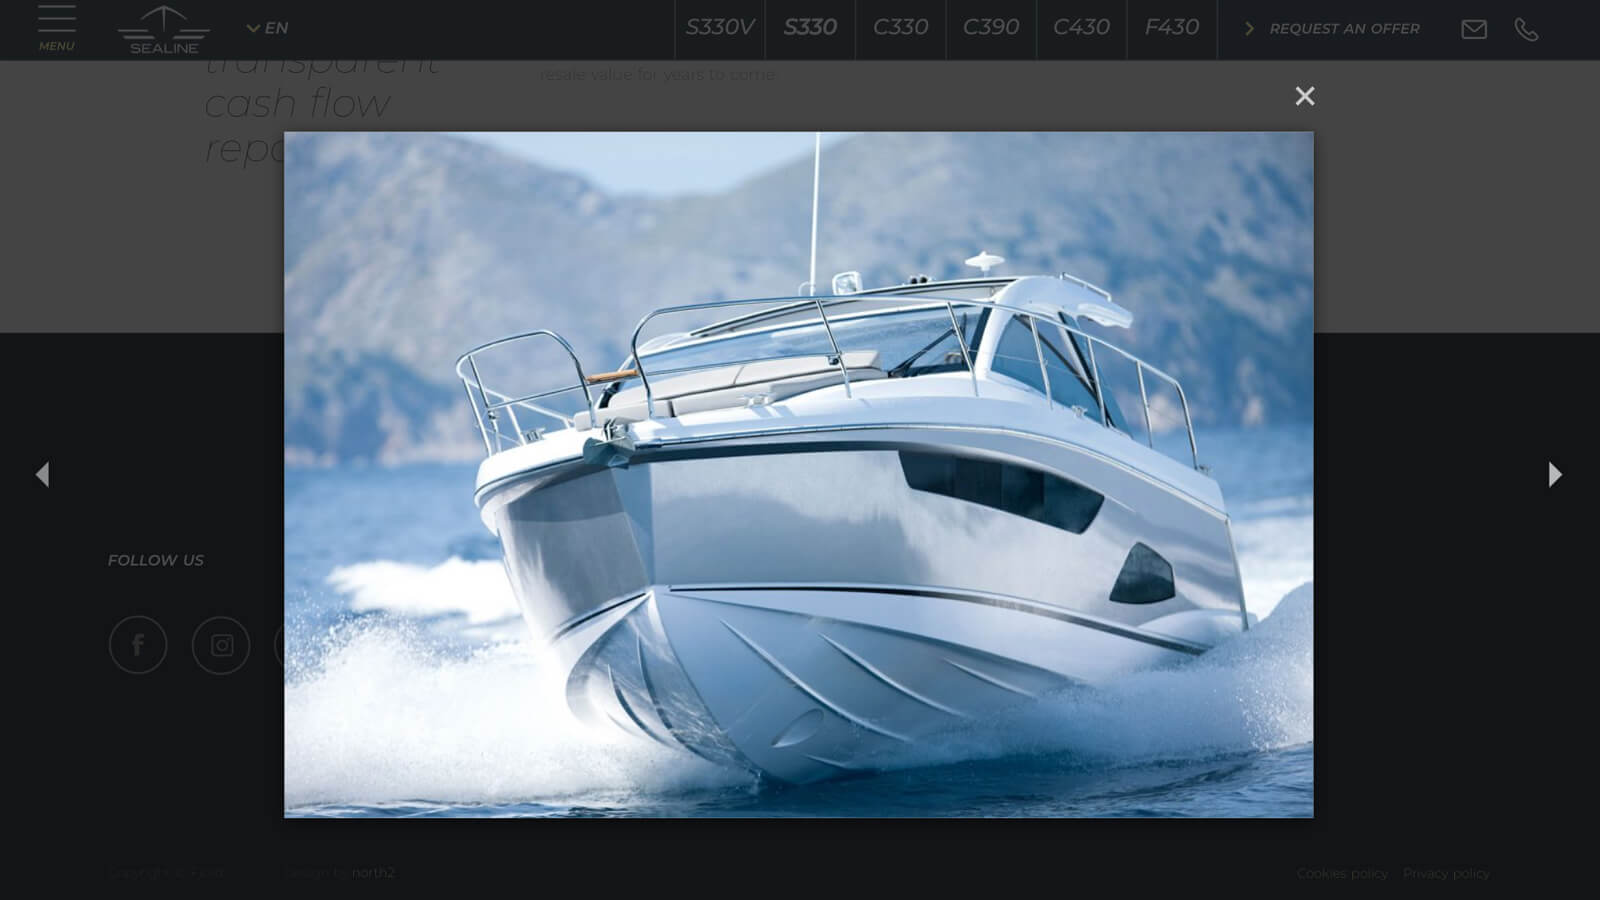 Sealine yacht gallery